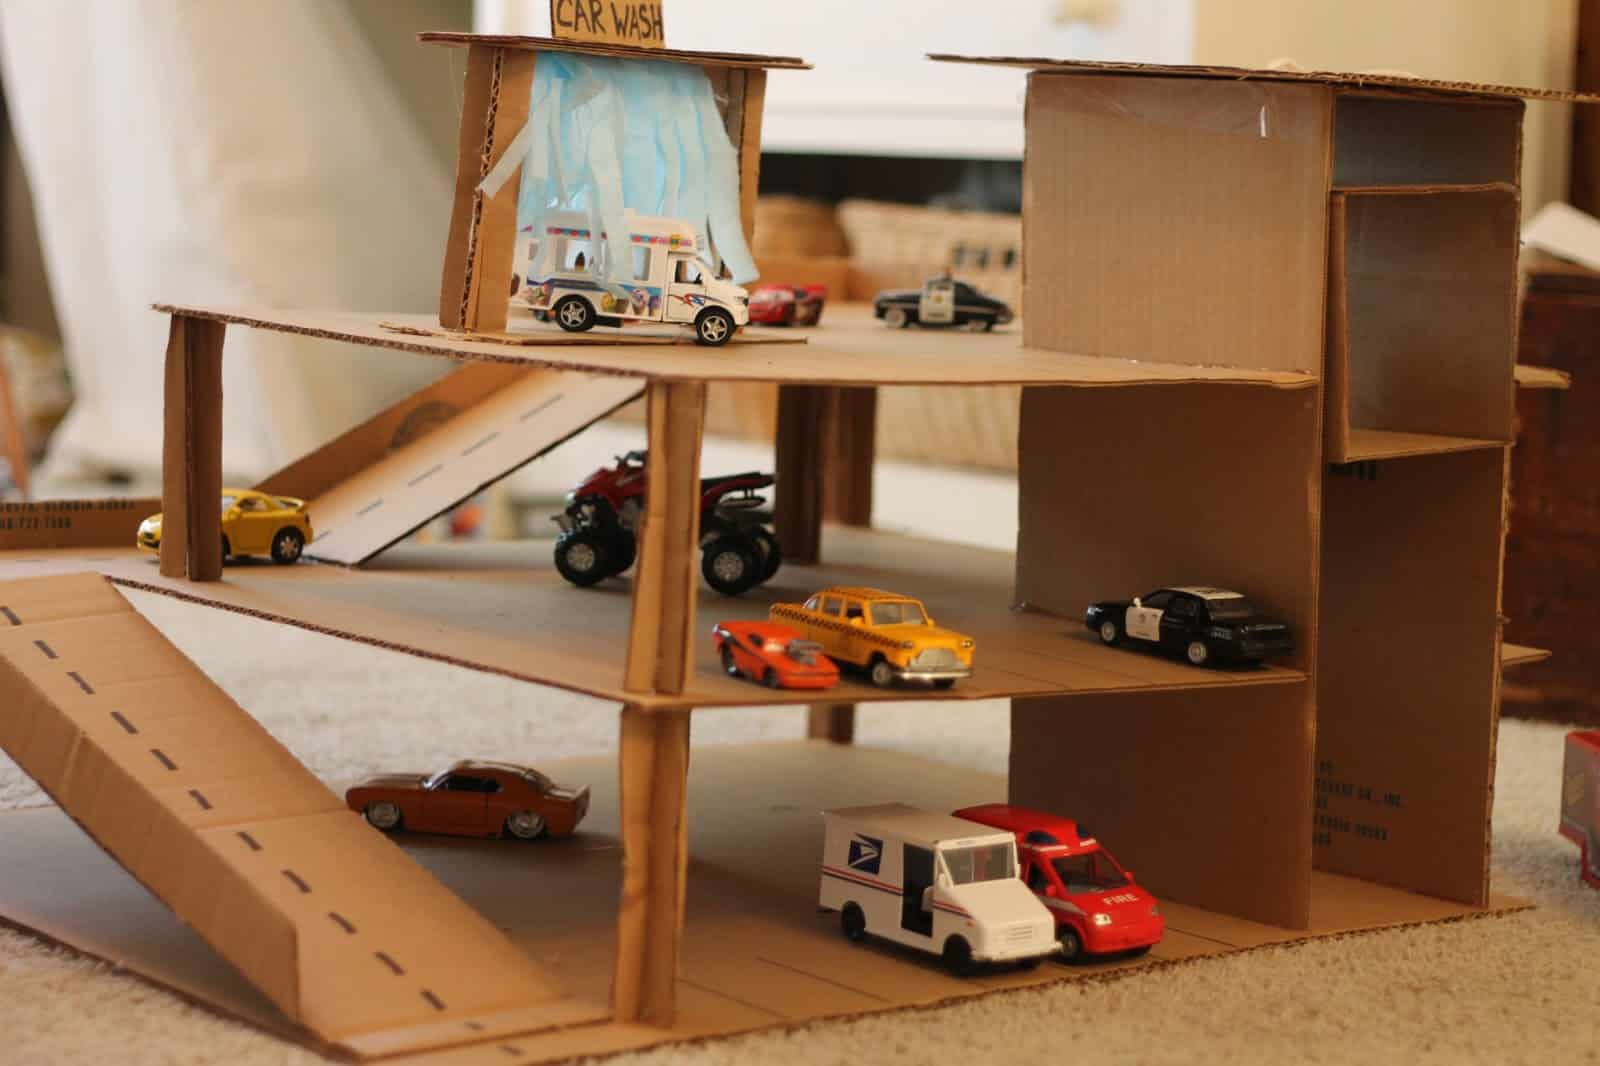 Cardboard box toy car parking garage